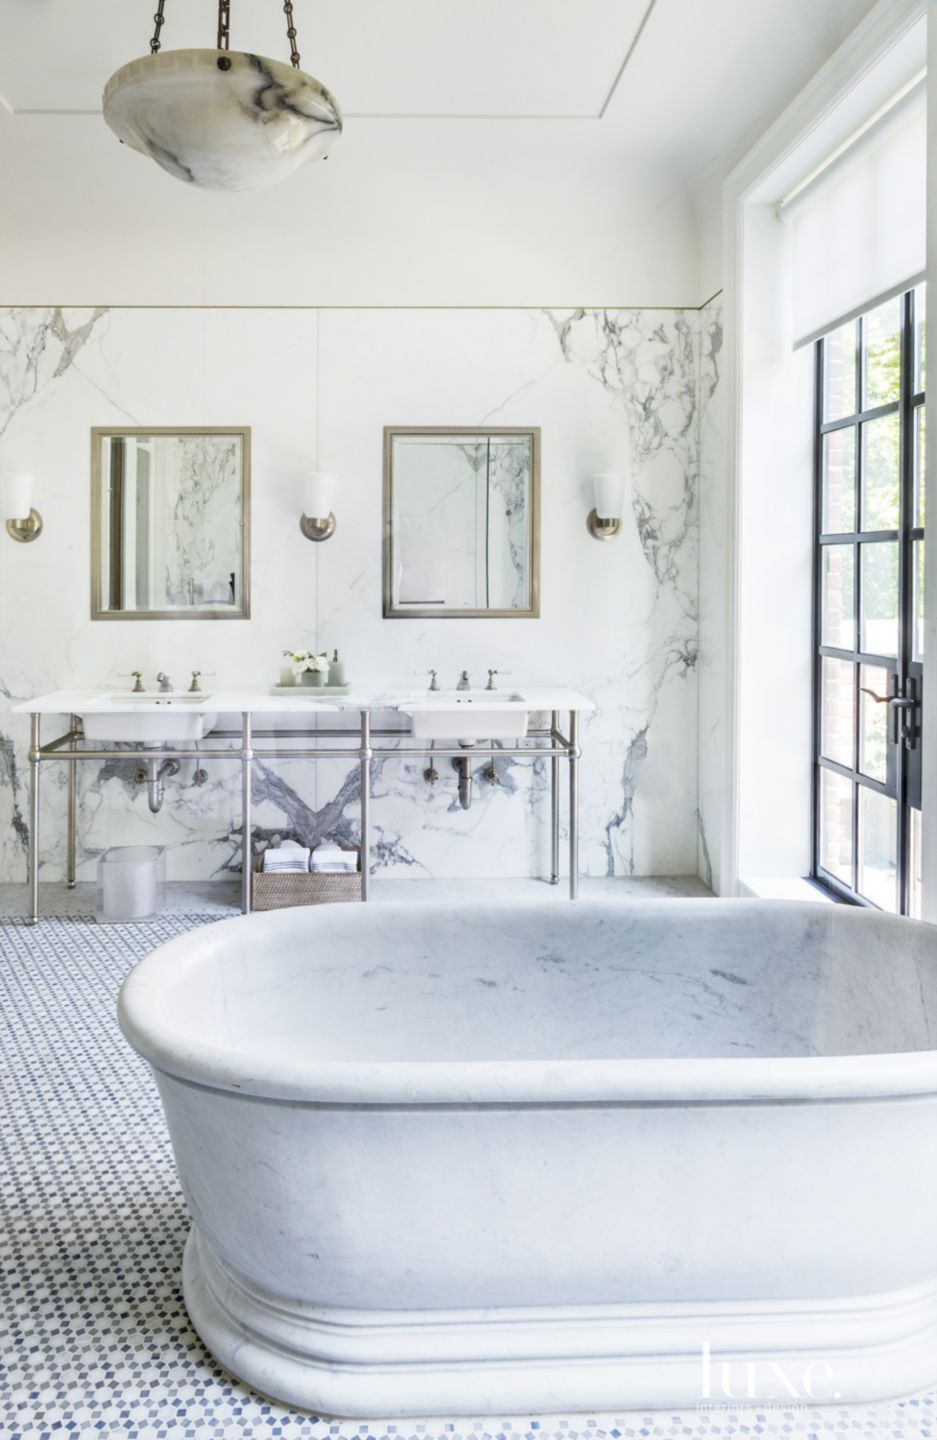 Eclectic White Bathroom with Marble Freestanding Tub